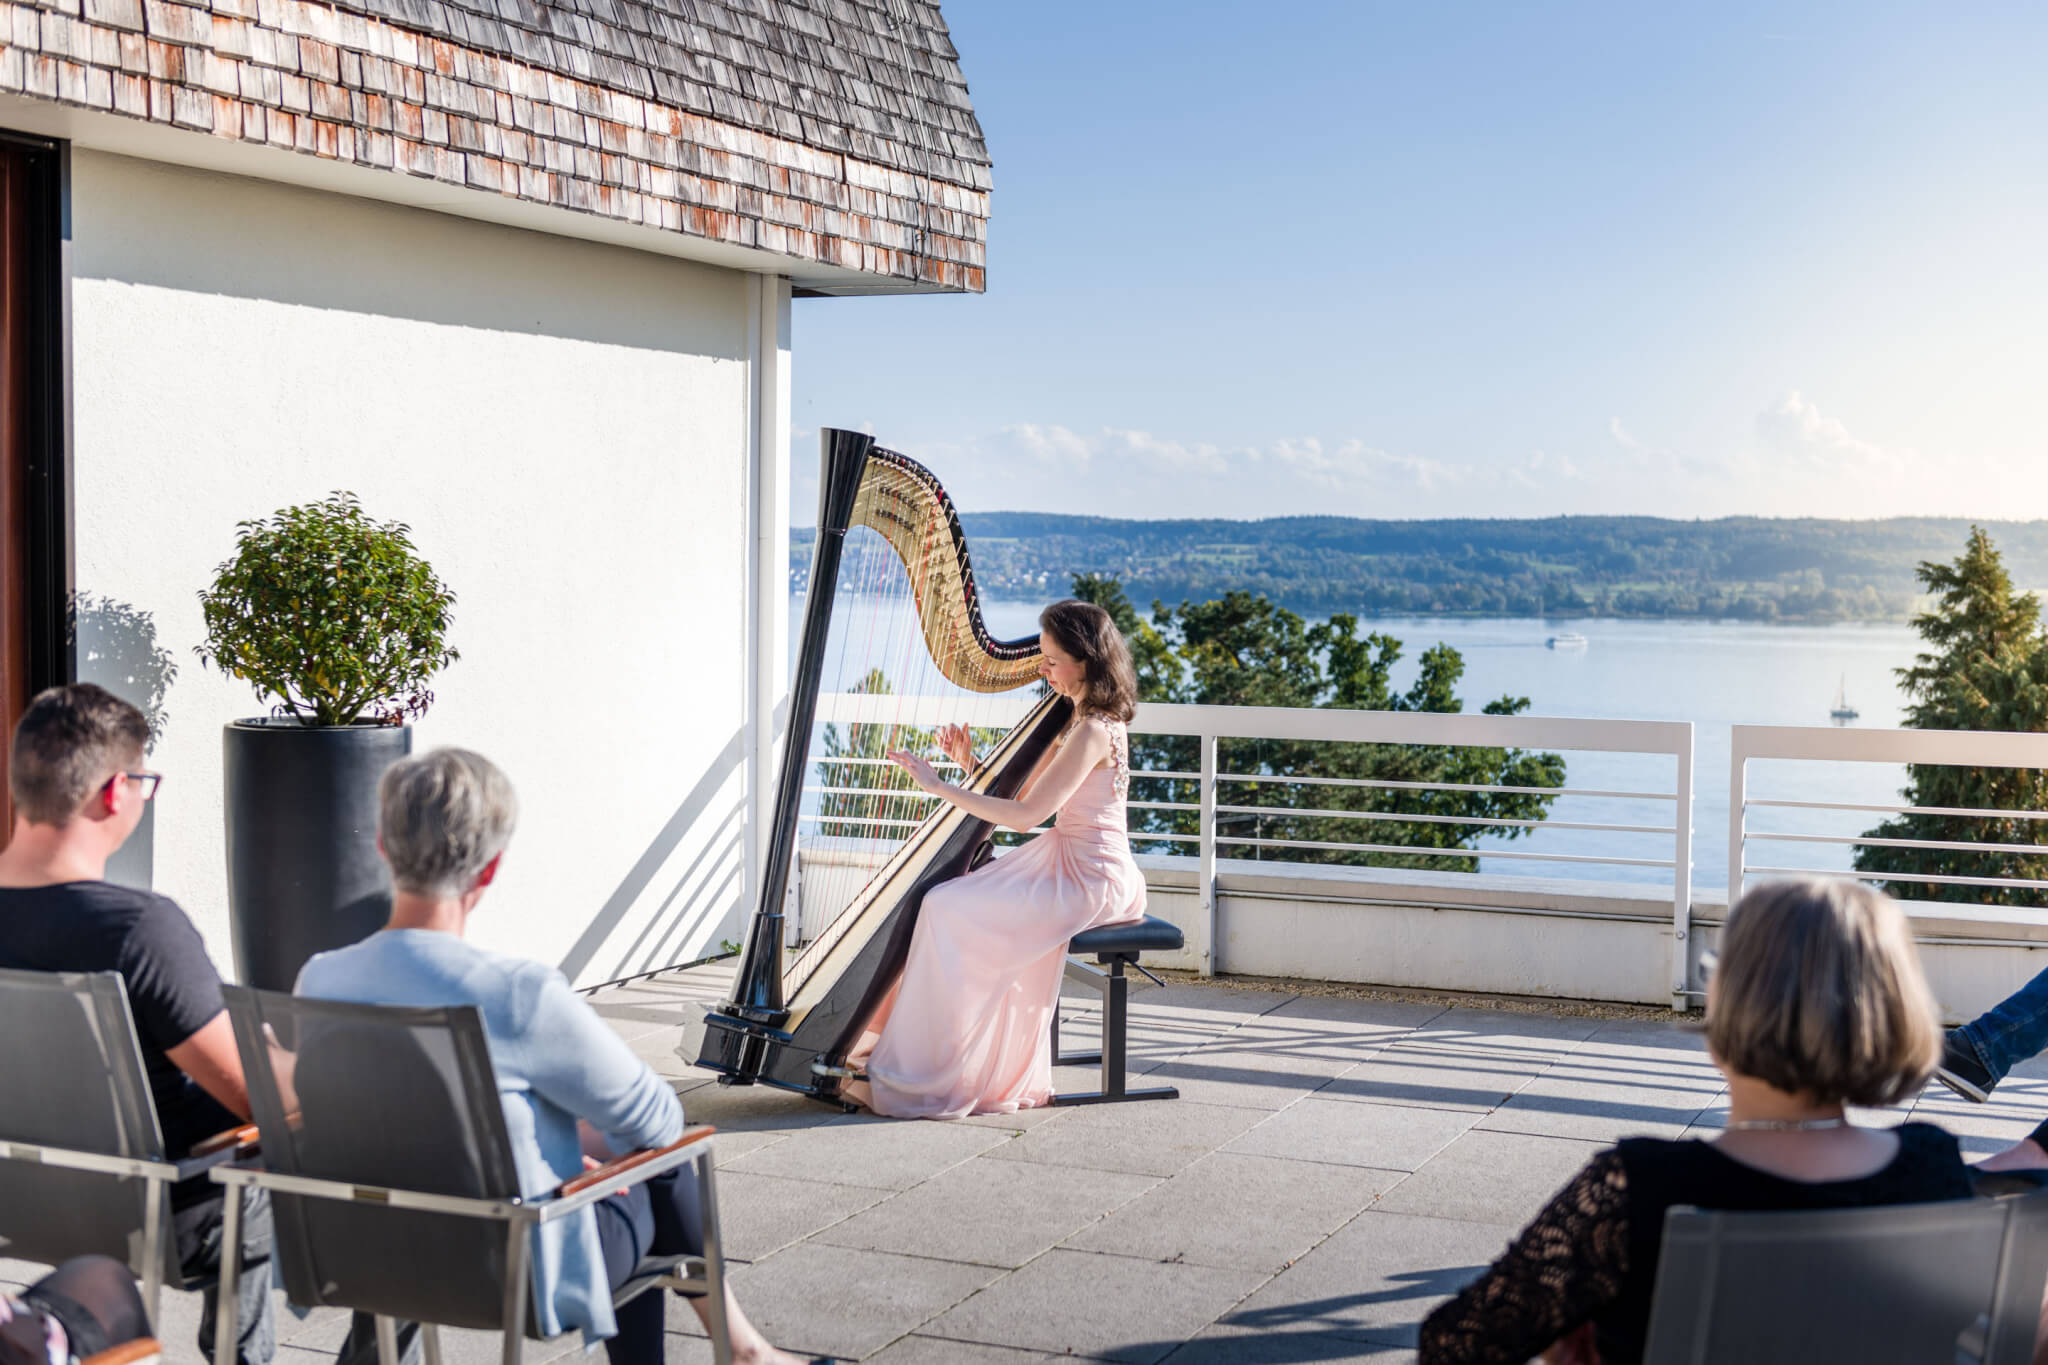 Buchinger Wilhelmi, Fasten, Heilfasten, Fasting, Health, Integrative Medicine, Terasse, Aussicht, View, Bodensee, Lake of Constance, Harfe, Musik, Konzert, Music, Concert, Entertainment